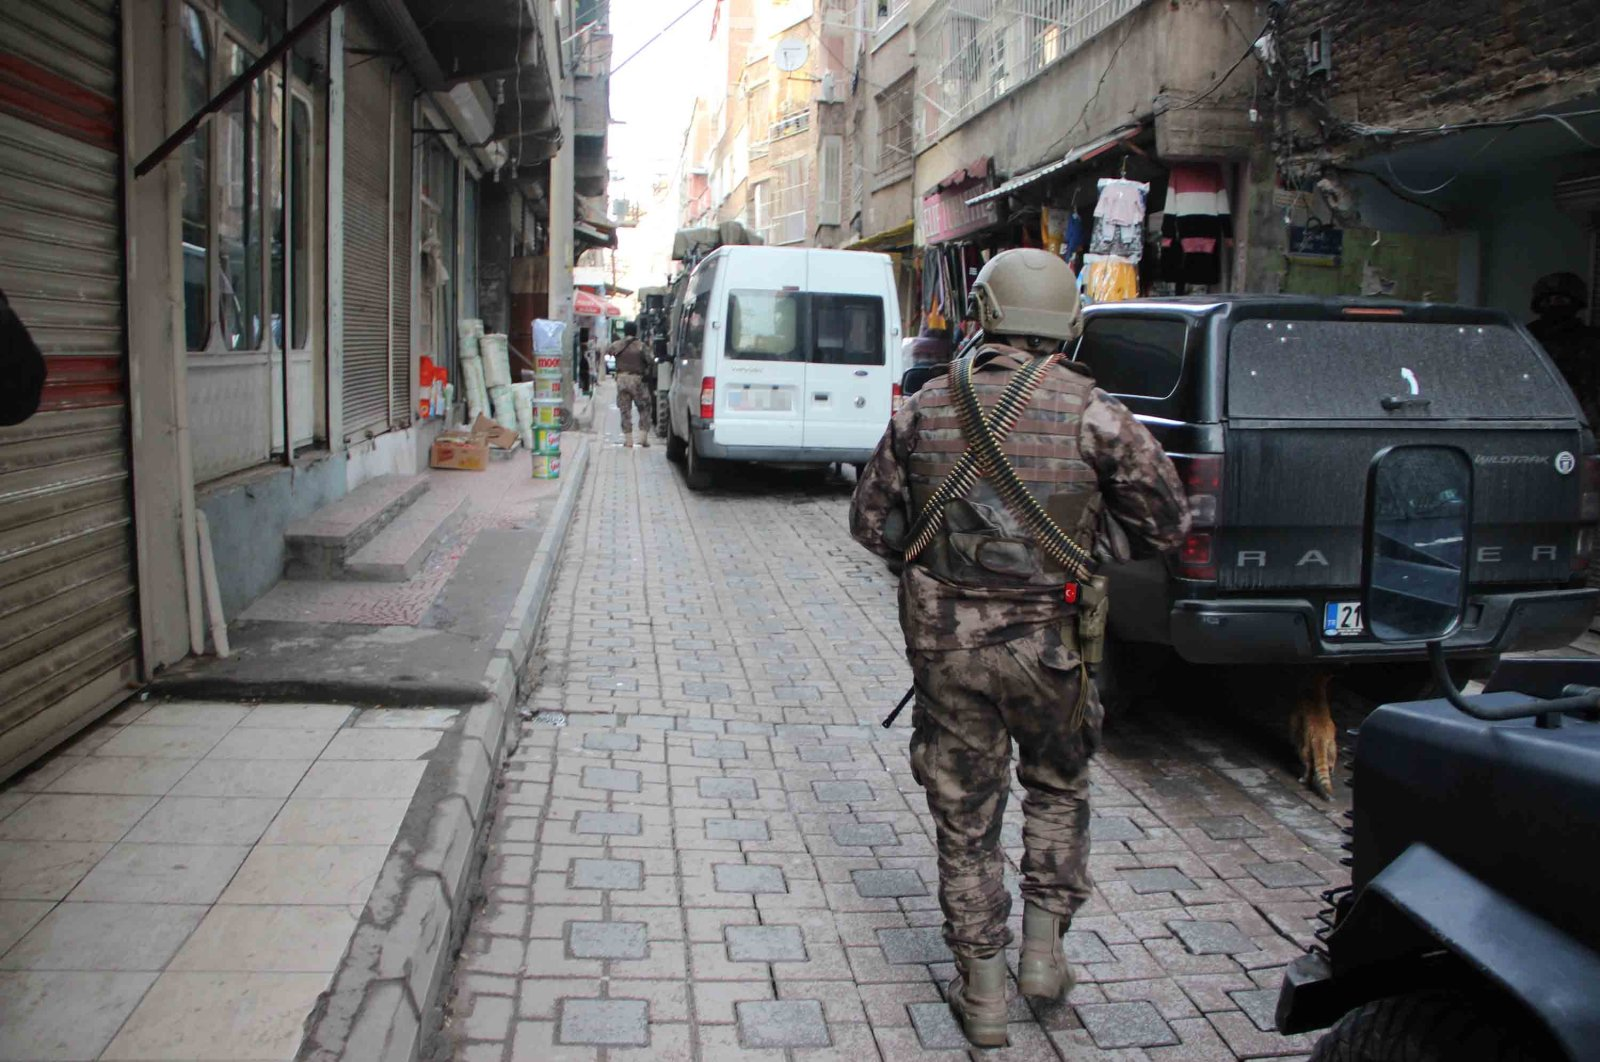 A counterterrorism officer takes part in an operation in Diyarbakır, Turkey, in this undated photo. (DHA File Photo)